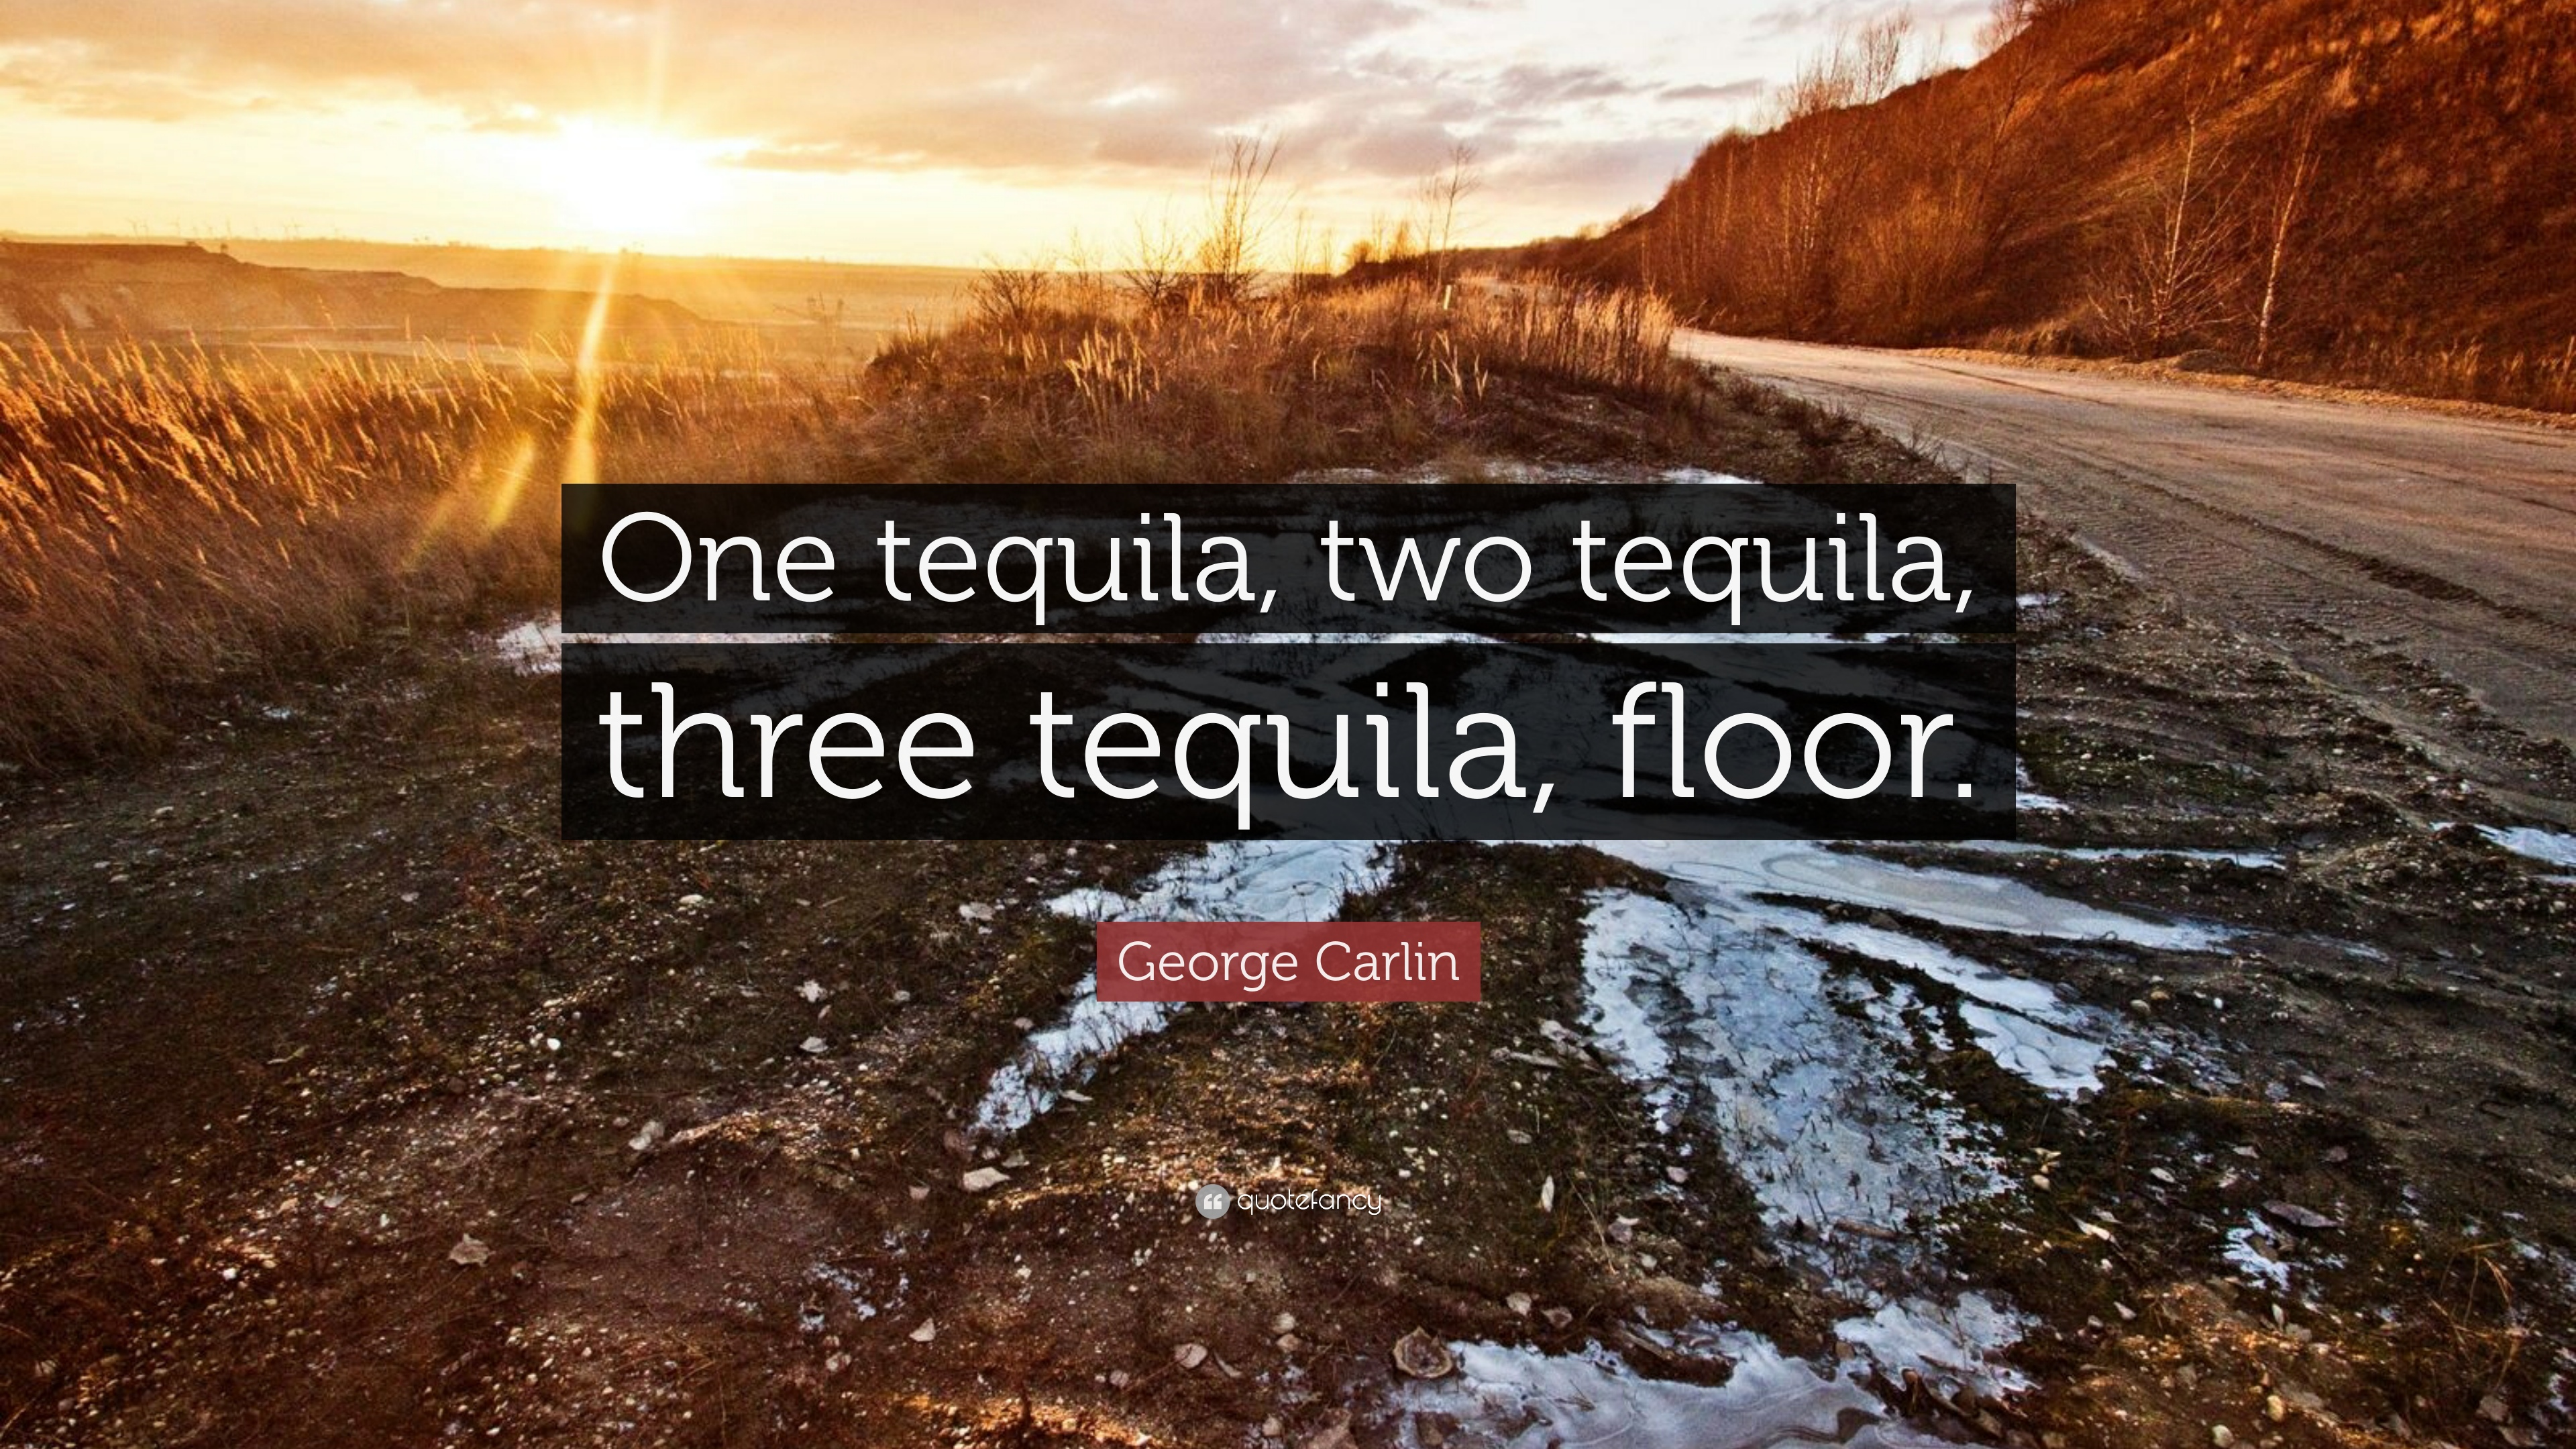 George carlin quote one tequila two tequila three for 1 tequila 2 tequila 3 tequila floor lyrics